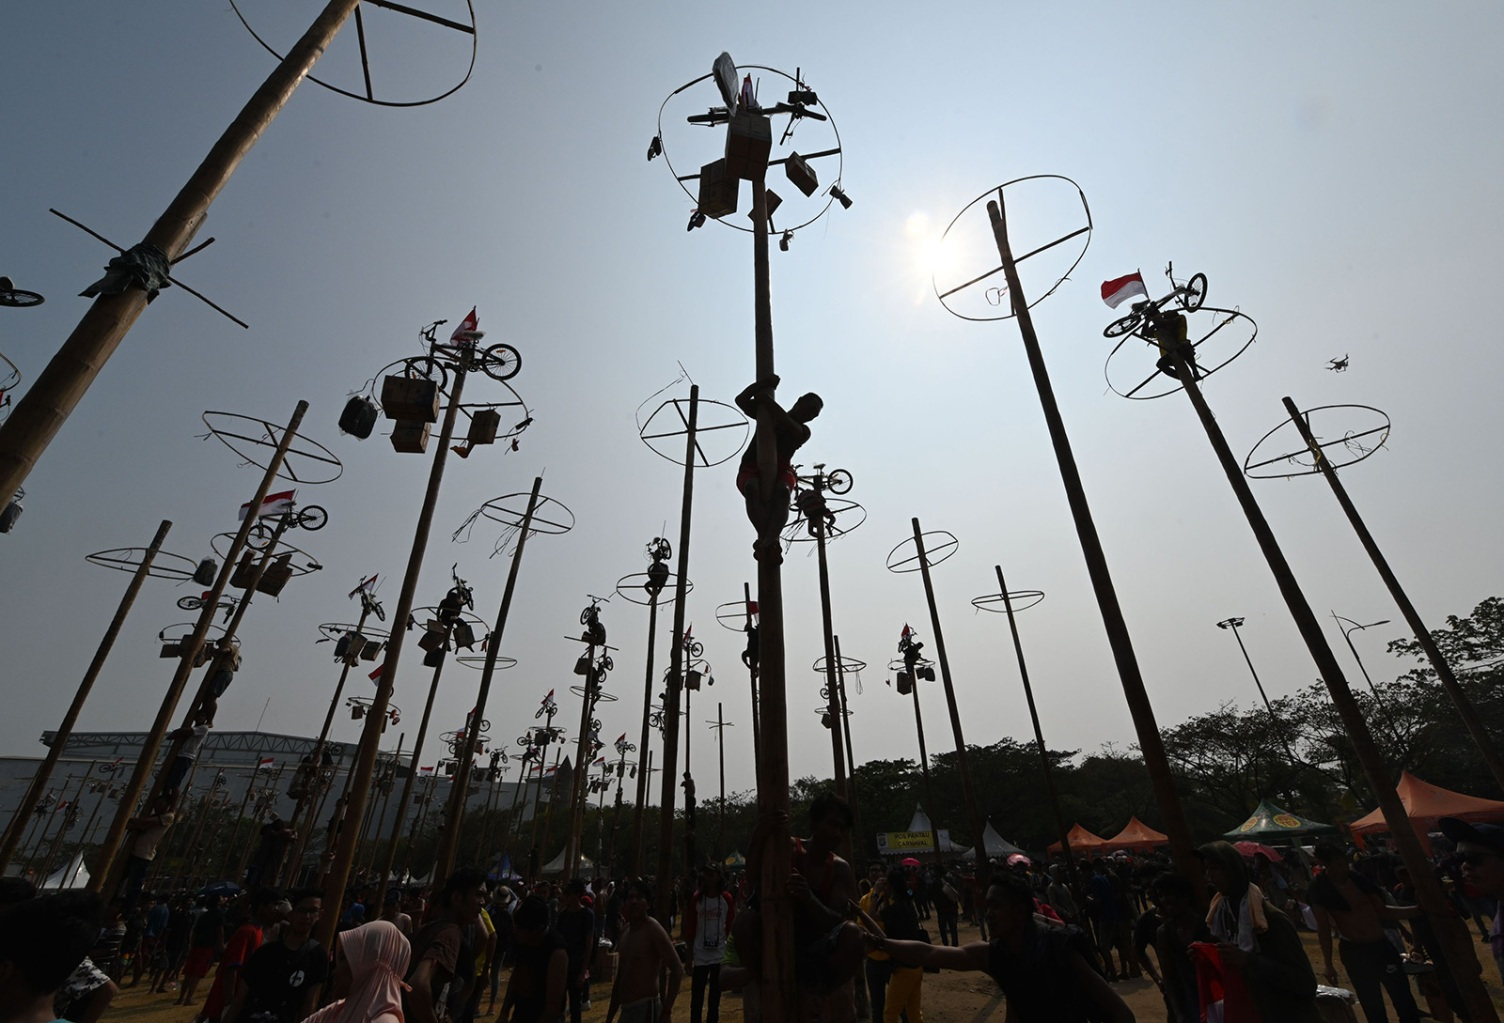 Participants climb greasy poles in Jakarta on Aug. 17, during Panjat Pinang, a pole-climbing contest to celebrate Indonesia's 74th anniversary of independence from Dutch rule. GOH CHAI HIN/AFP/Getty Images